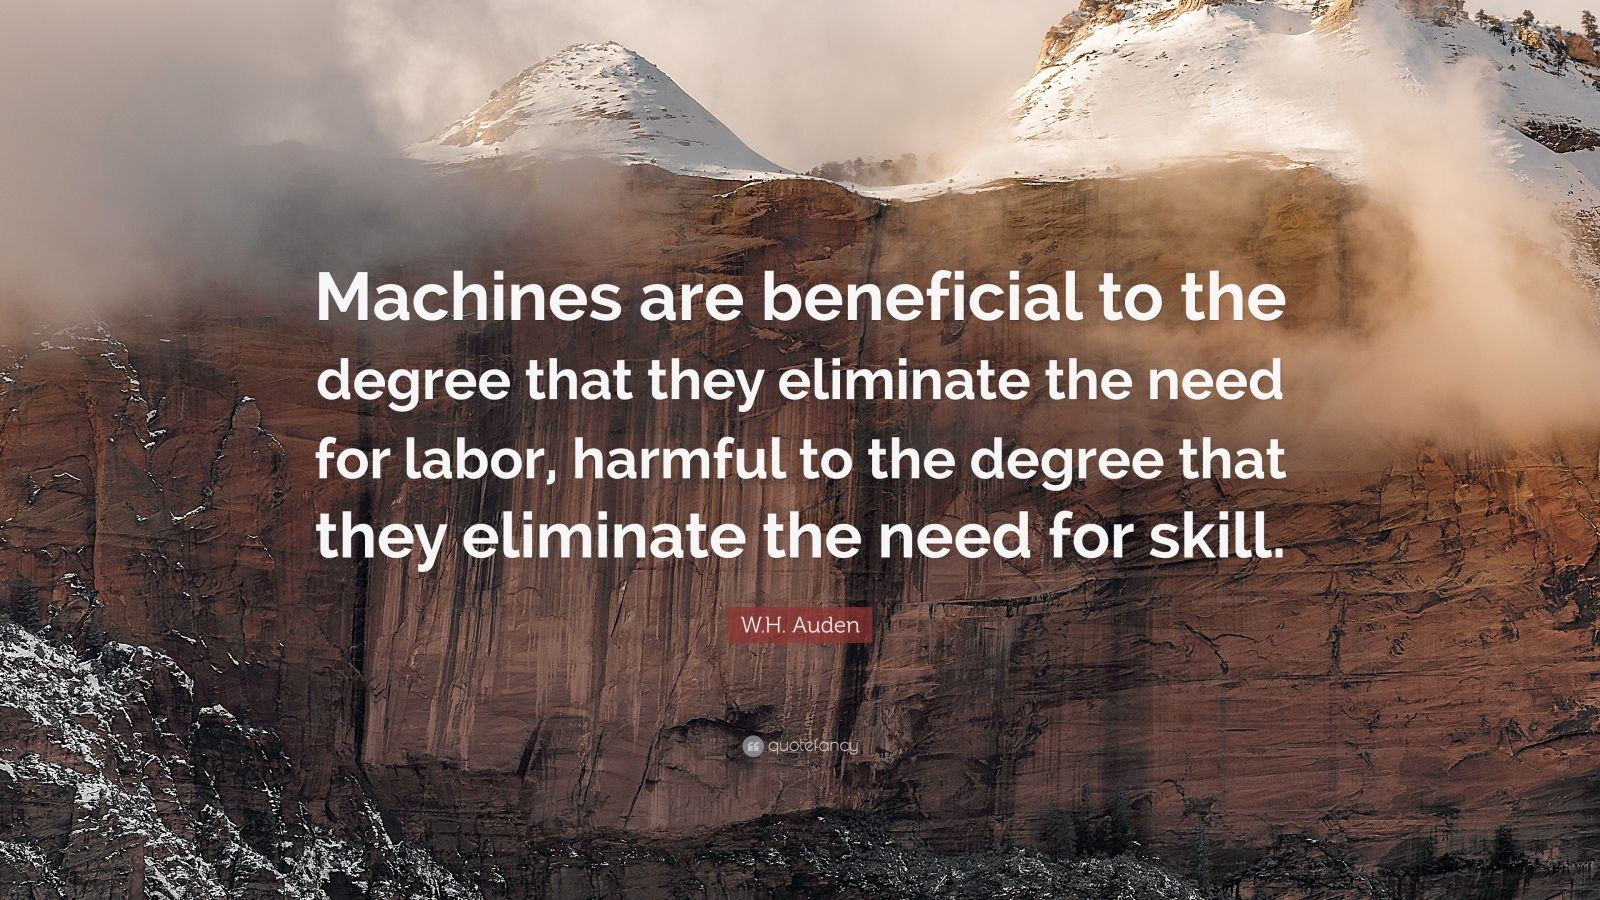 """W.H. Auden Quote: """"Machines are beneficial to the degree that they eliminate the need for labor, harmful to the degree that they eliminate the need for skill."""""""